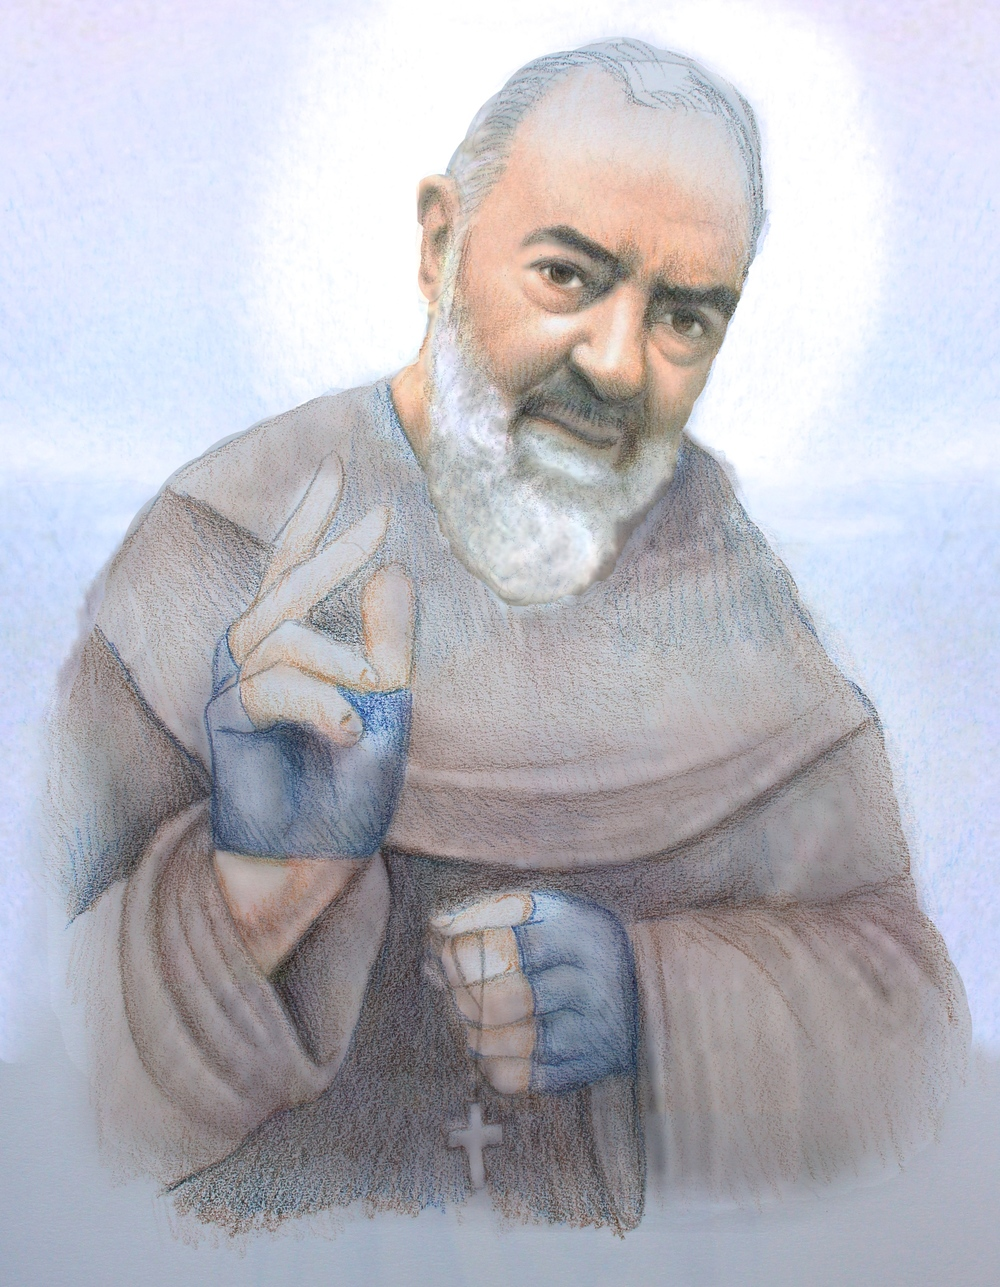 St. Padre Pio copyright @ leadustoheaven.com